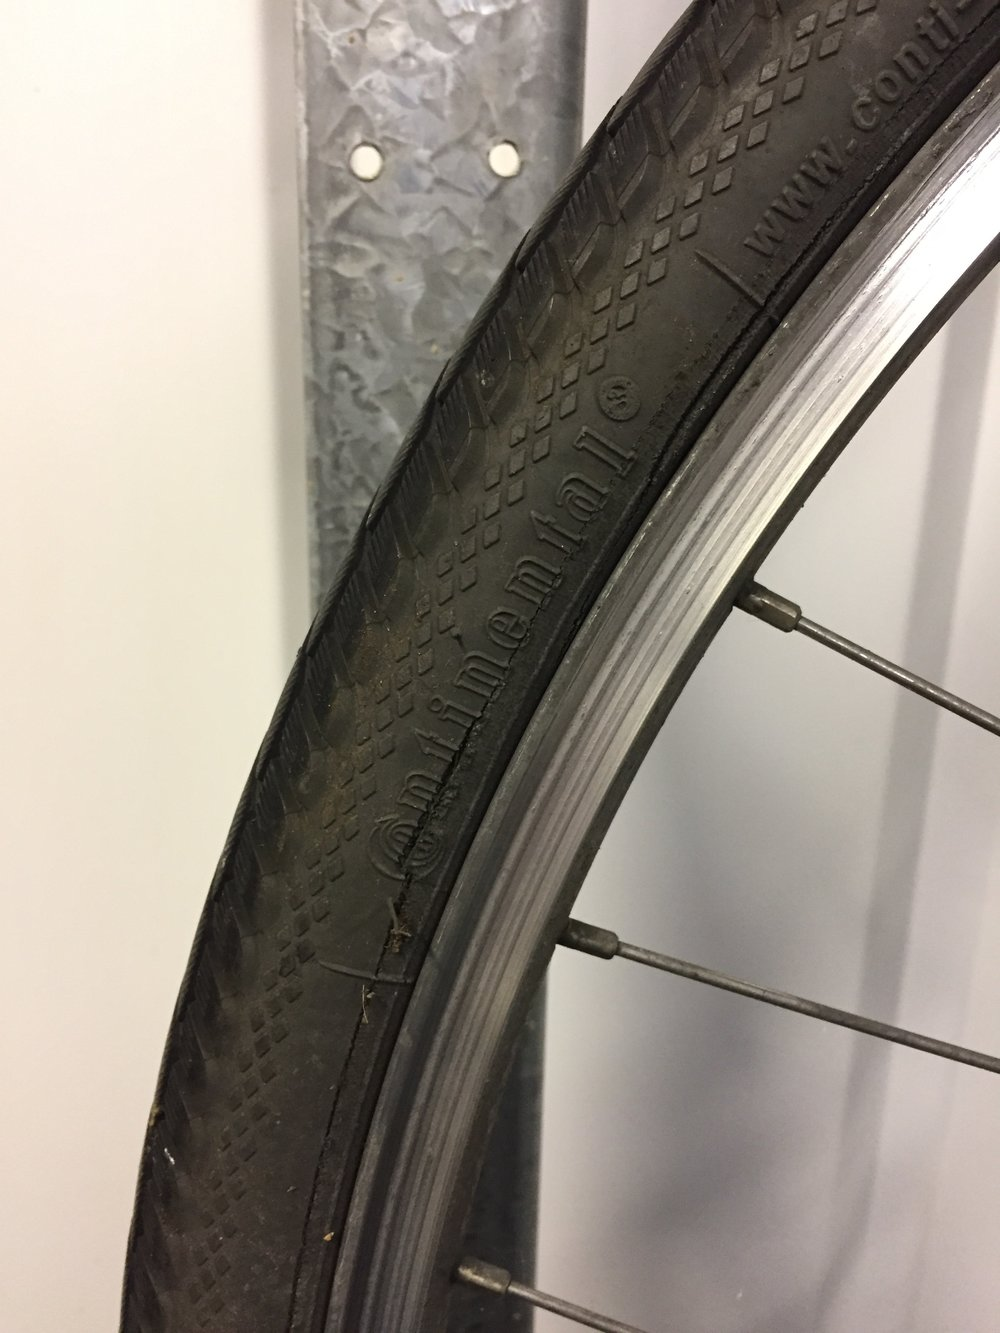 This tyre is cracked at the logo. Under high tyre pressure and passenger load the sidewall could split further, causing a catastrophic failure during a ride. This tyre should be replaced as a safety precaution.